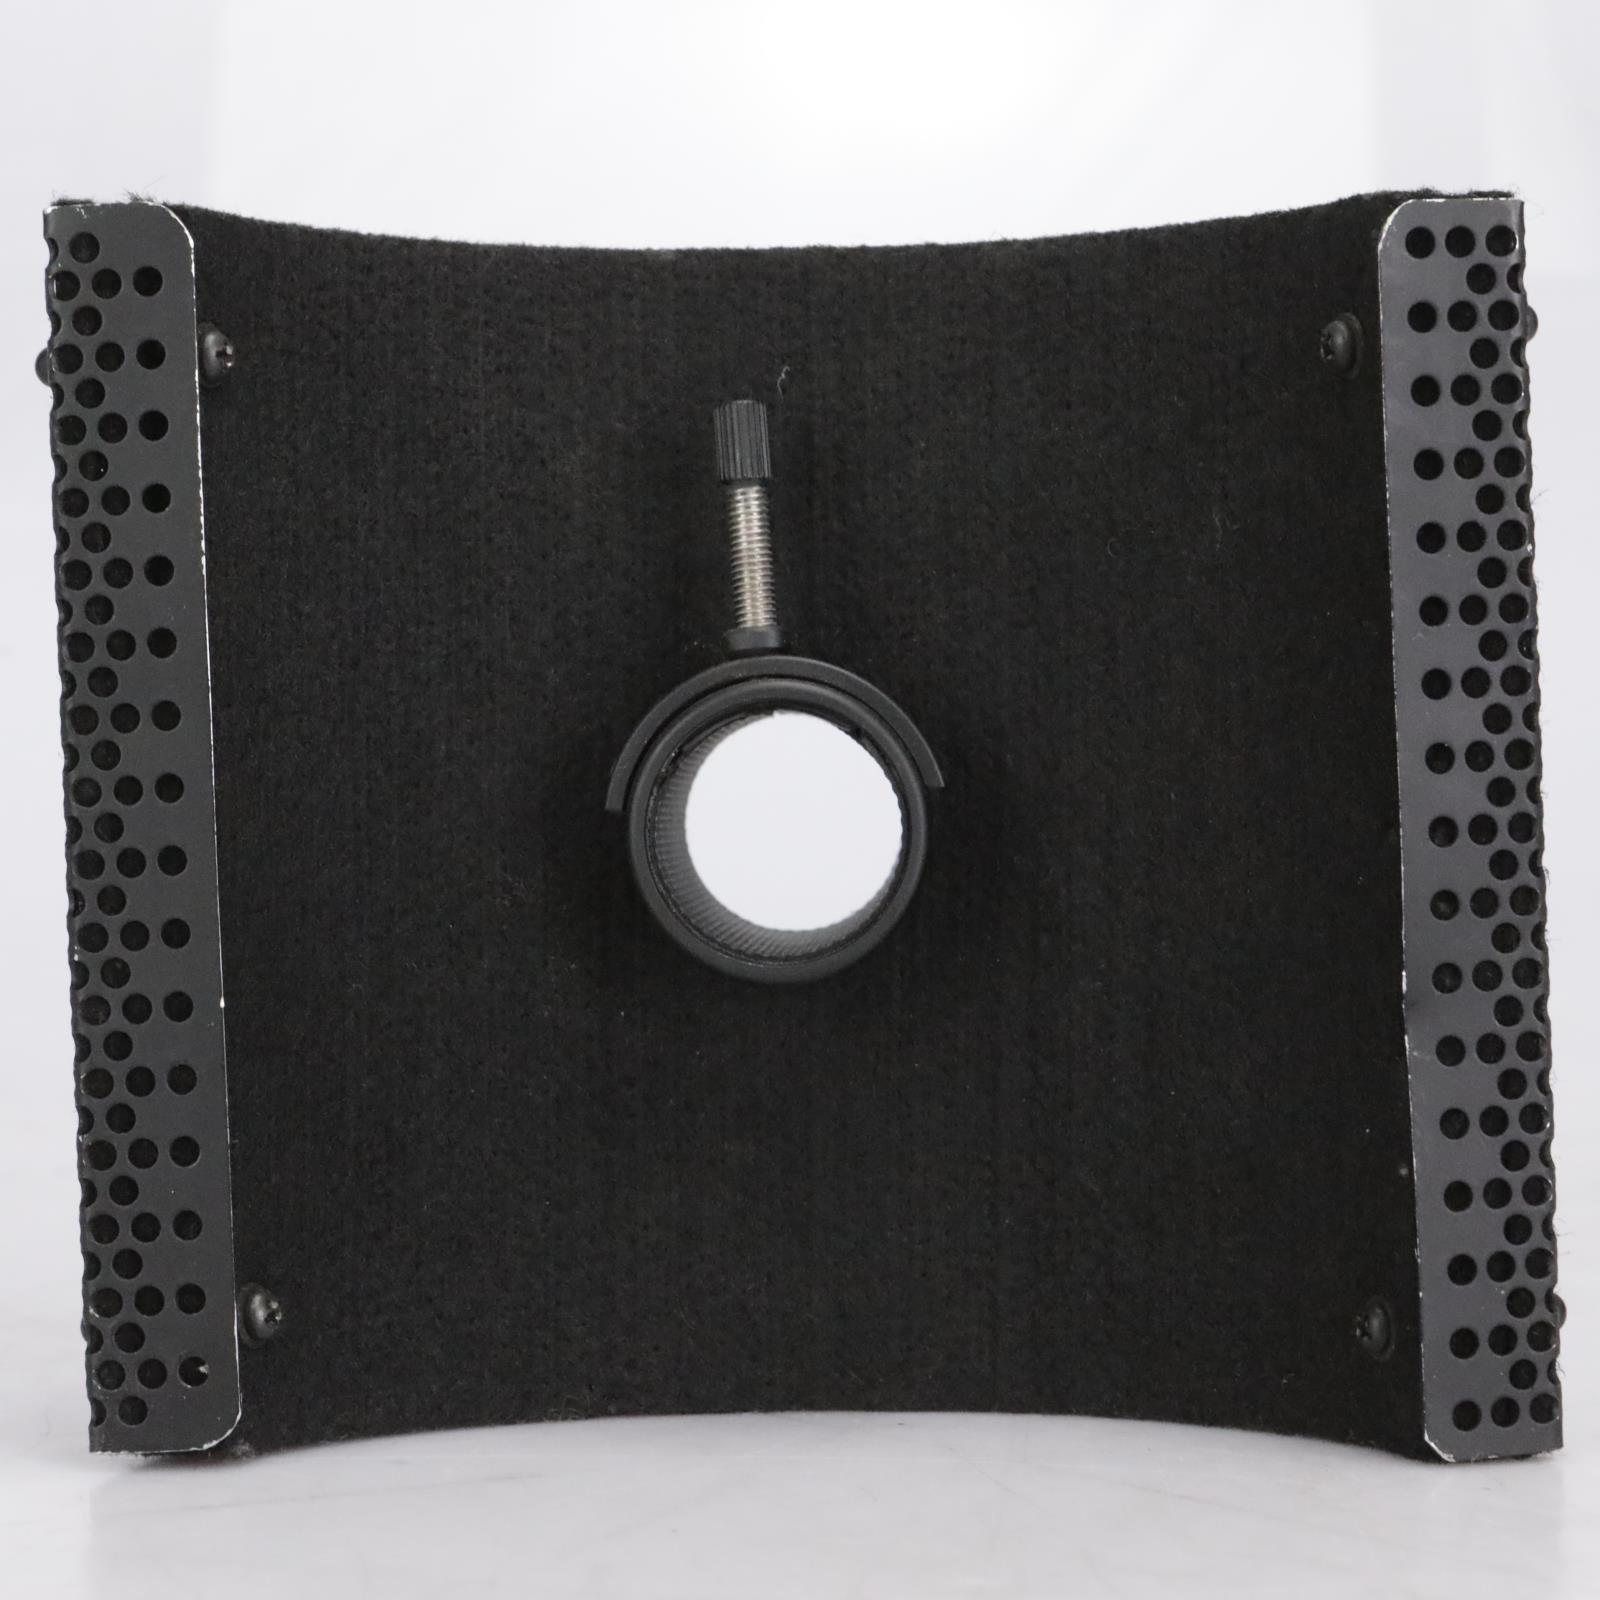 SE Electronics IRF2 Compact Instrument Reflexion Filter #42578